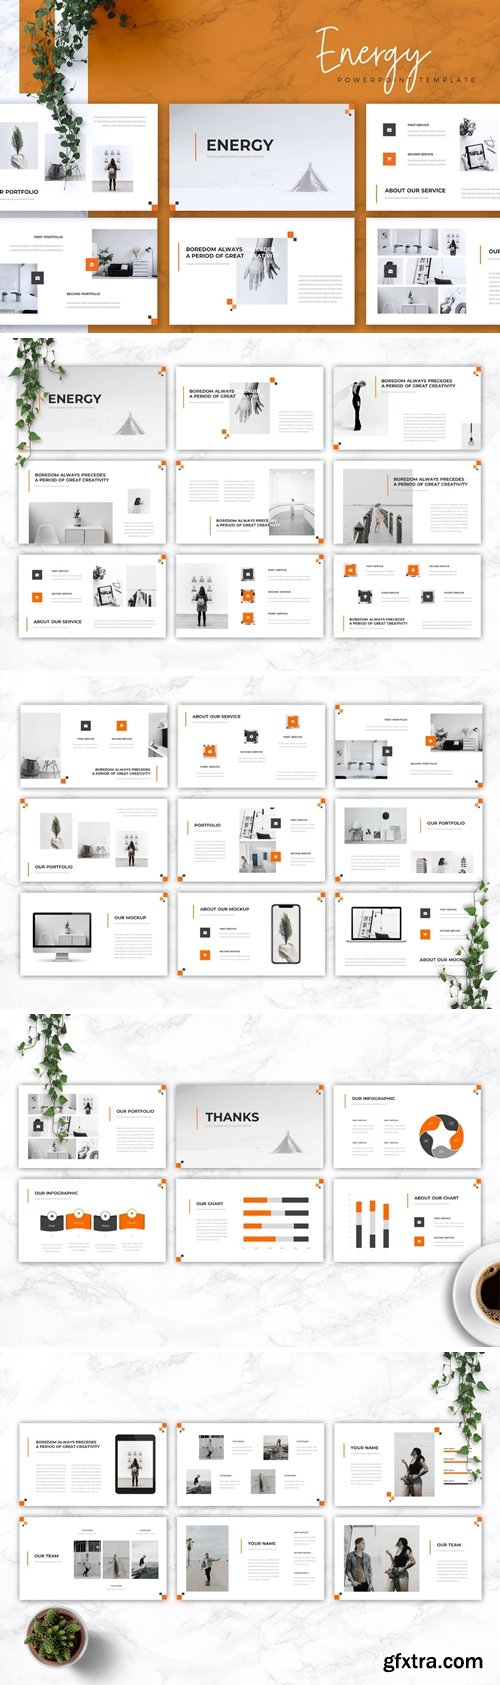 ENERGY - Creative Powerpoint Google Slides and Keynote Templates